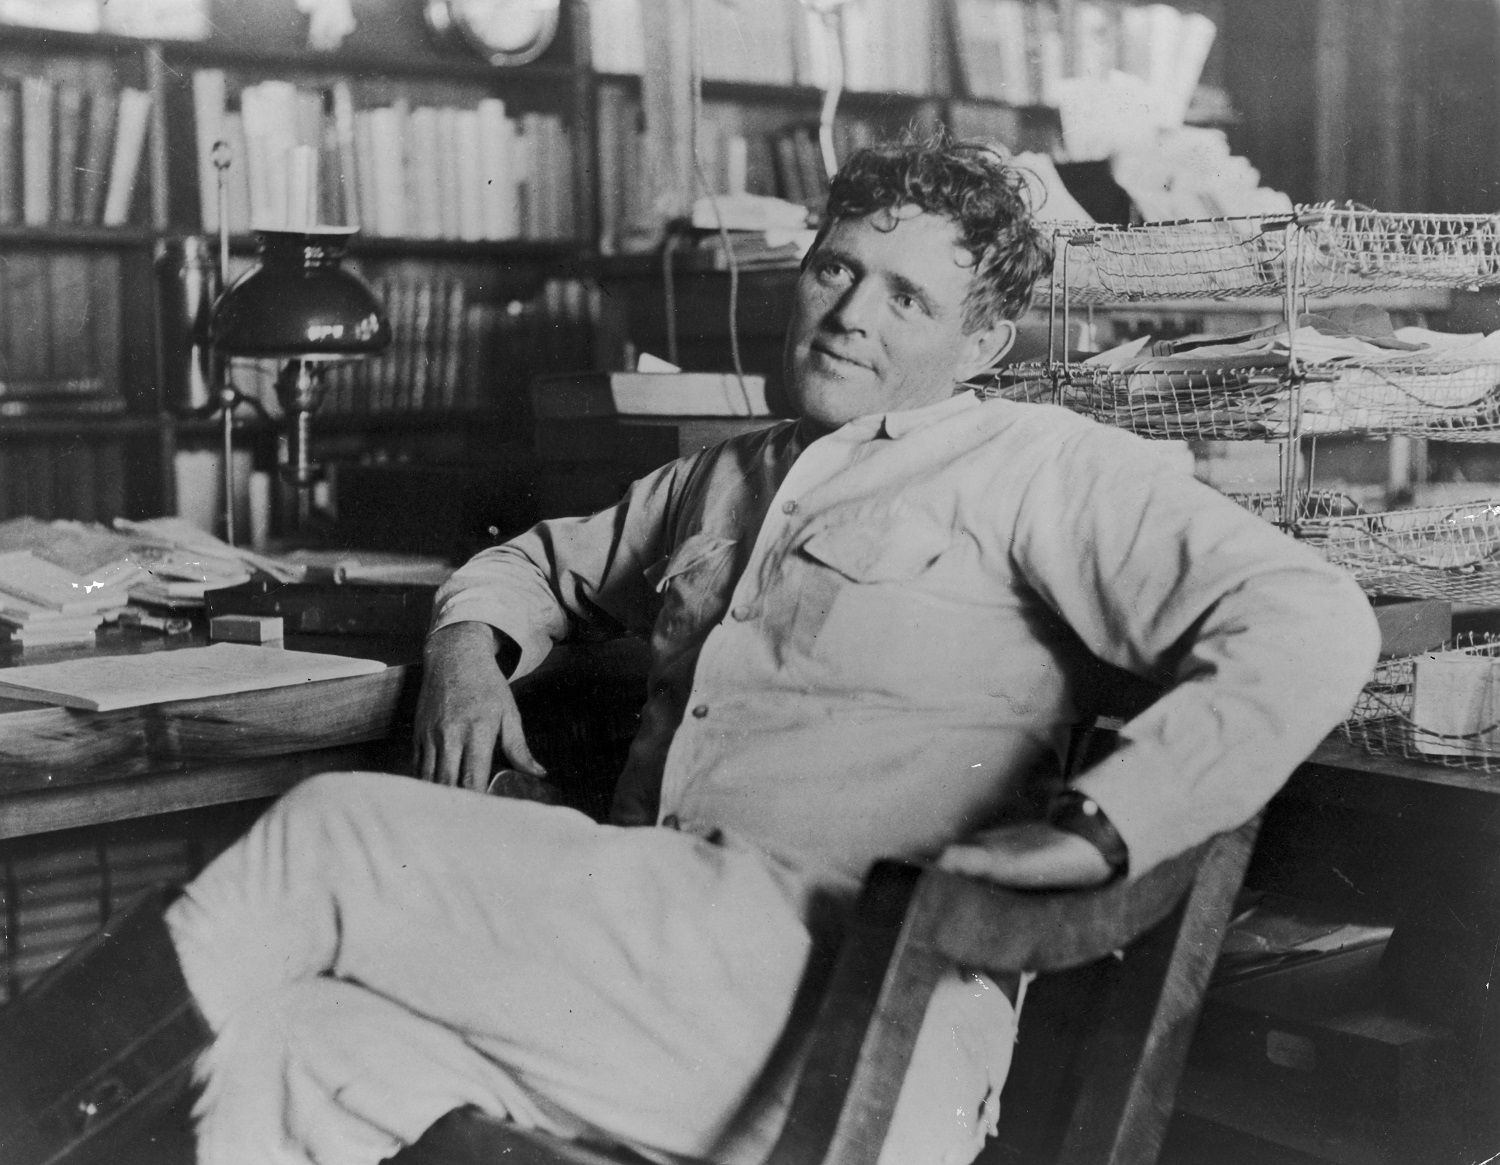 Jack London: His Life and Work